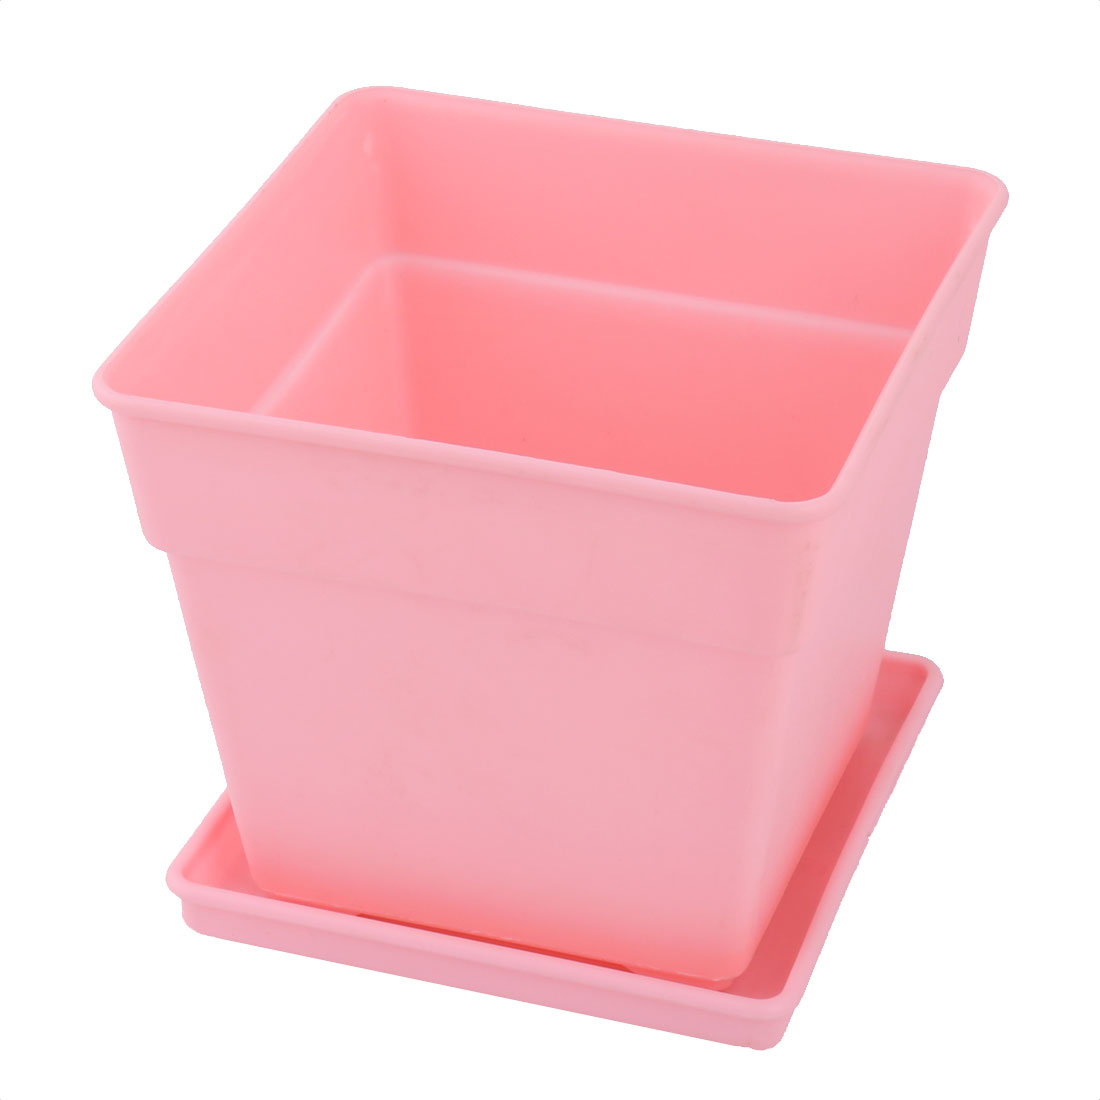 Office Decor Plastic Square Flower Plant Pot Tray Saucer Holder Container Pink